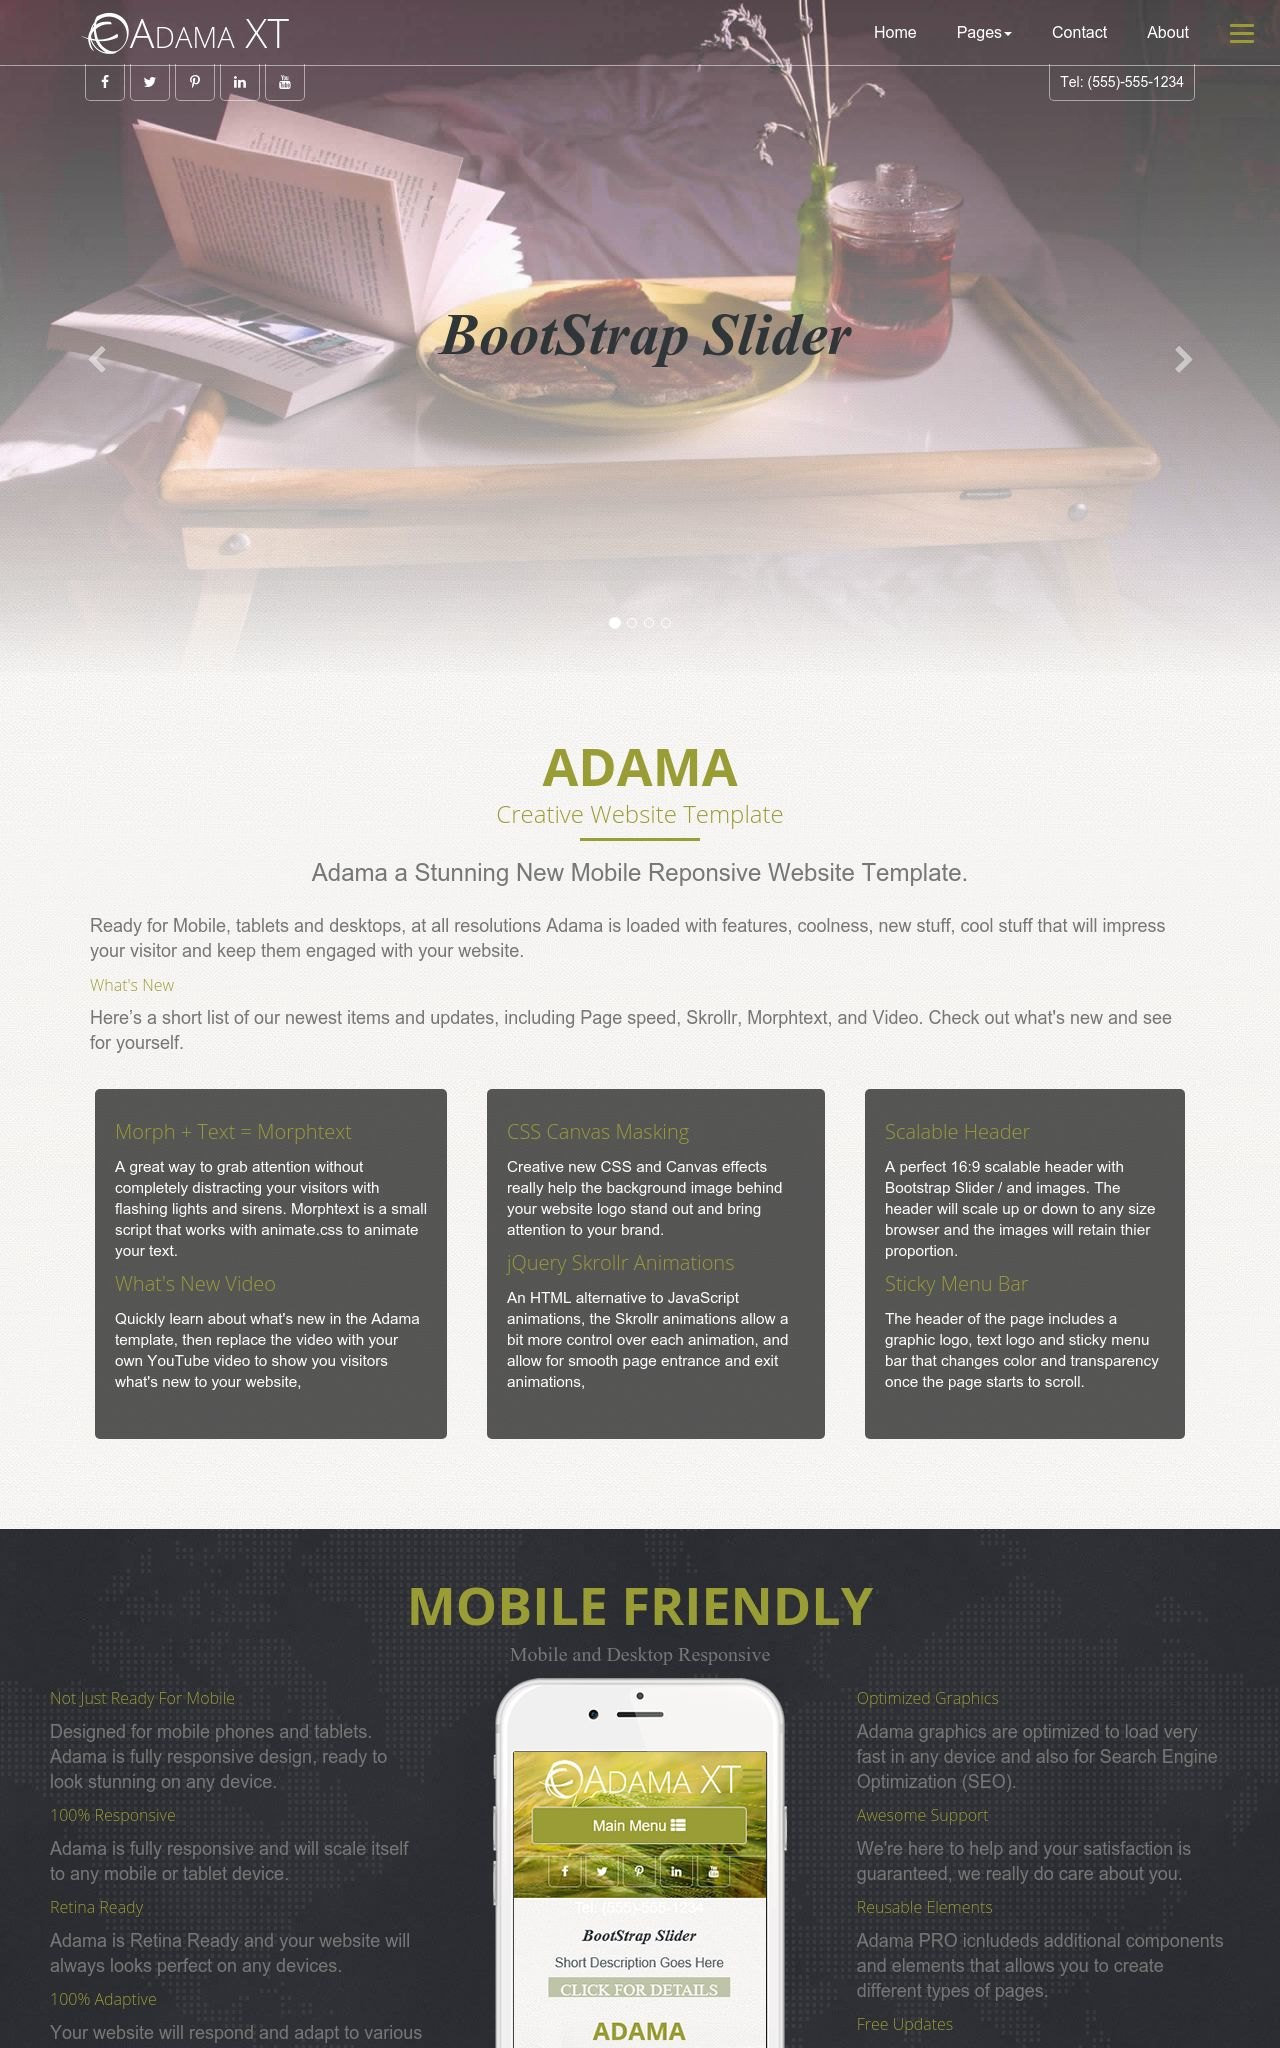 Adama [HD] Bed-and-breakfast Green/Black | Bed-and-breakfast ...